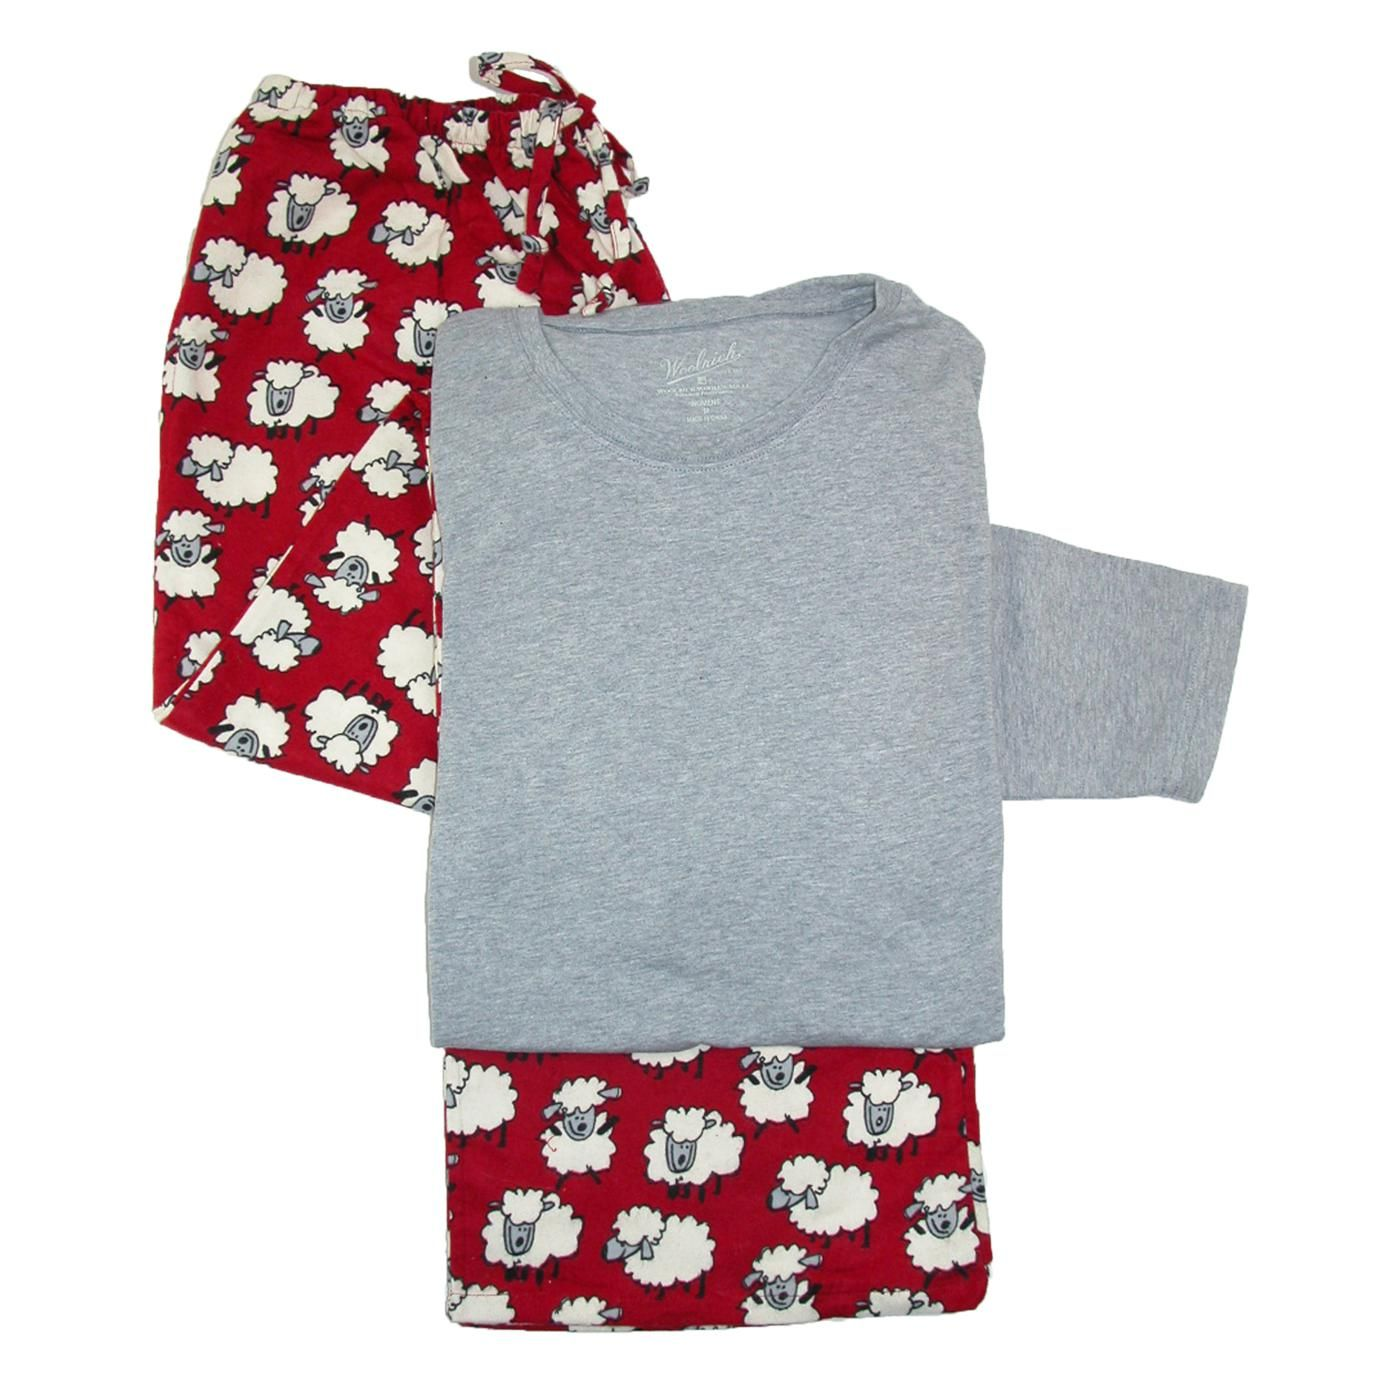 Red flannel pajamas  Cozy Cotton Flannel Set for Women by Woolrich The pants are a comfy